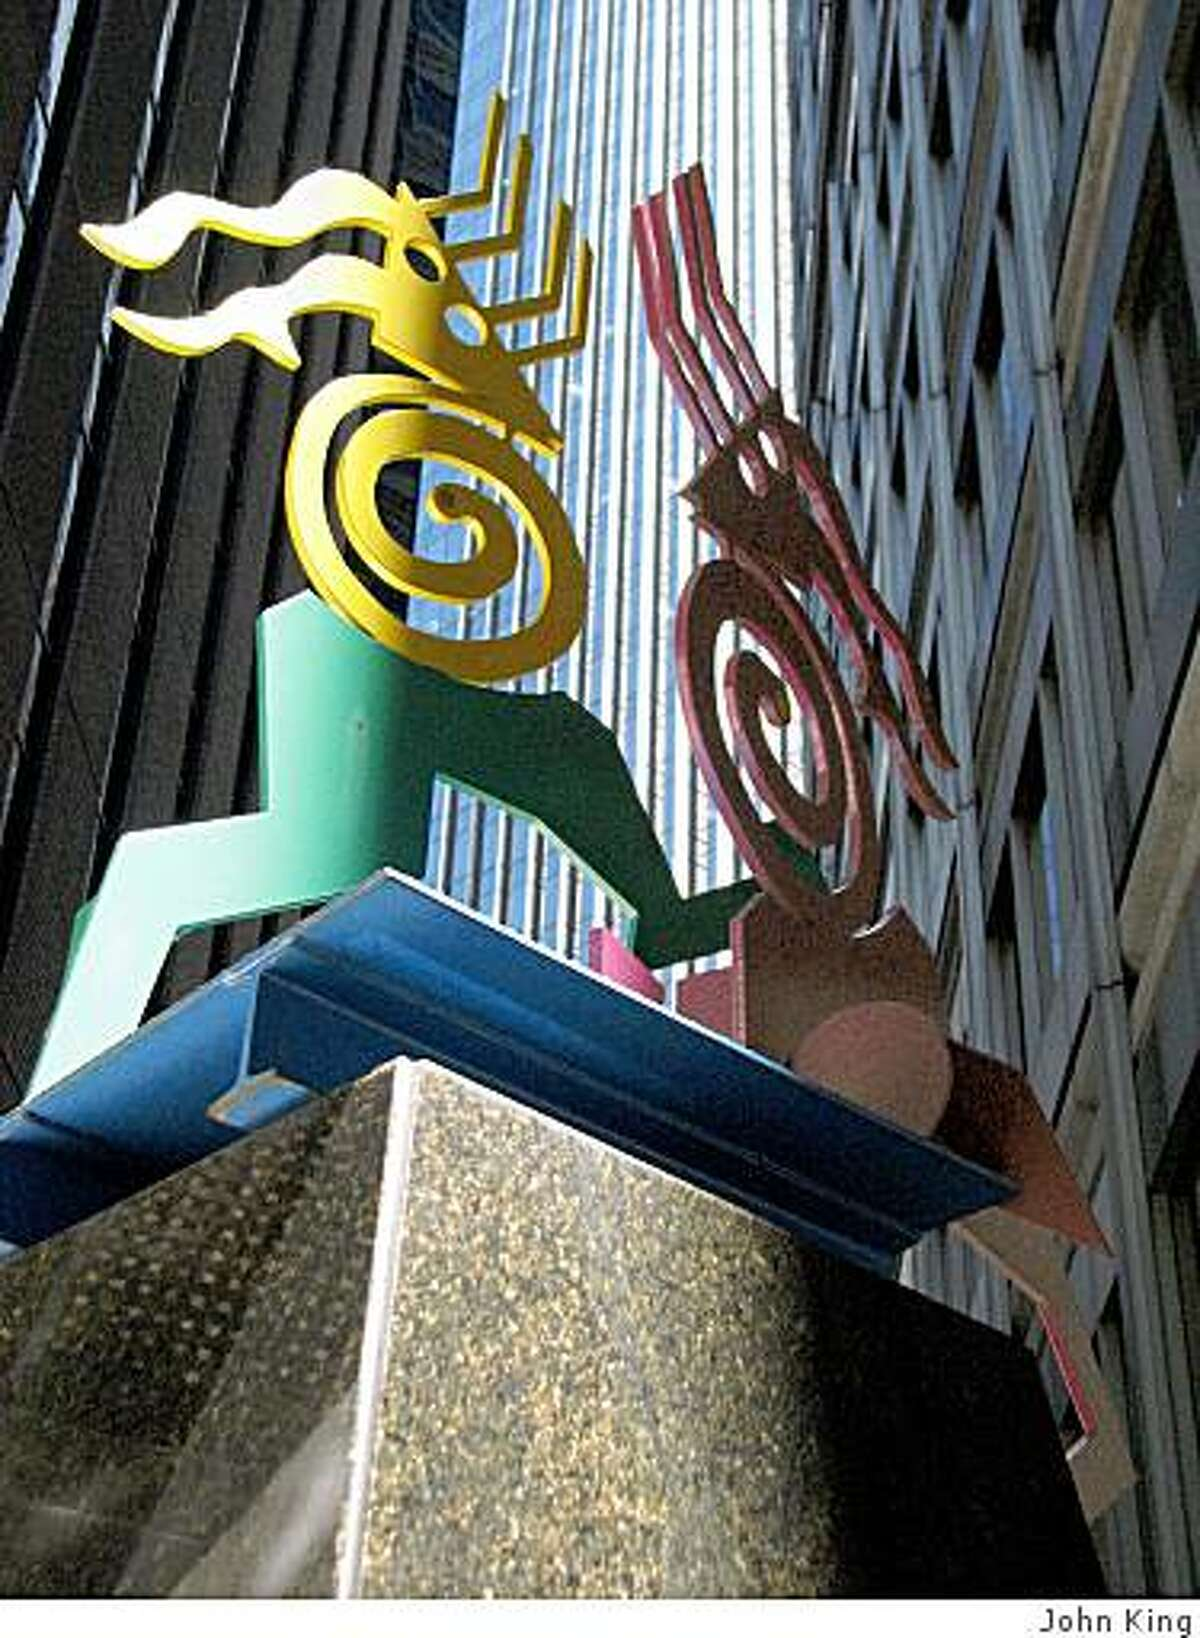 This small plaza behind the 100 Pine office tower is one of the urbane nooks of San Francisco's financial district. This photo shows a sculpture in the space,